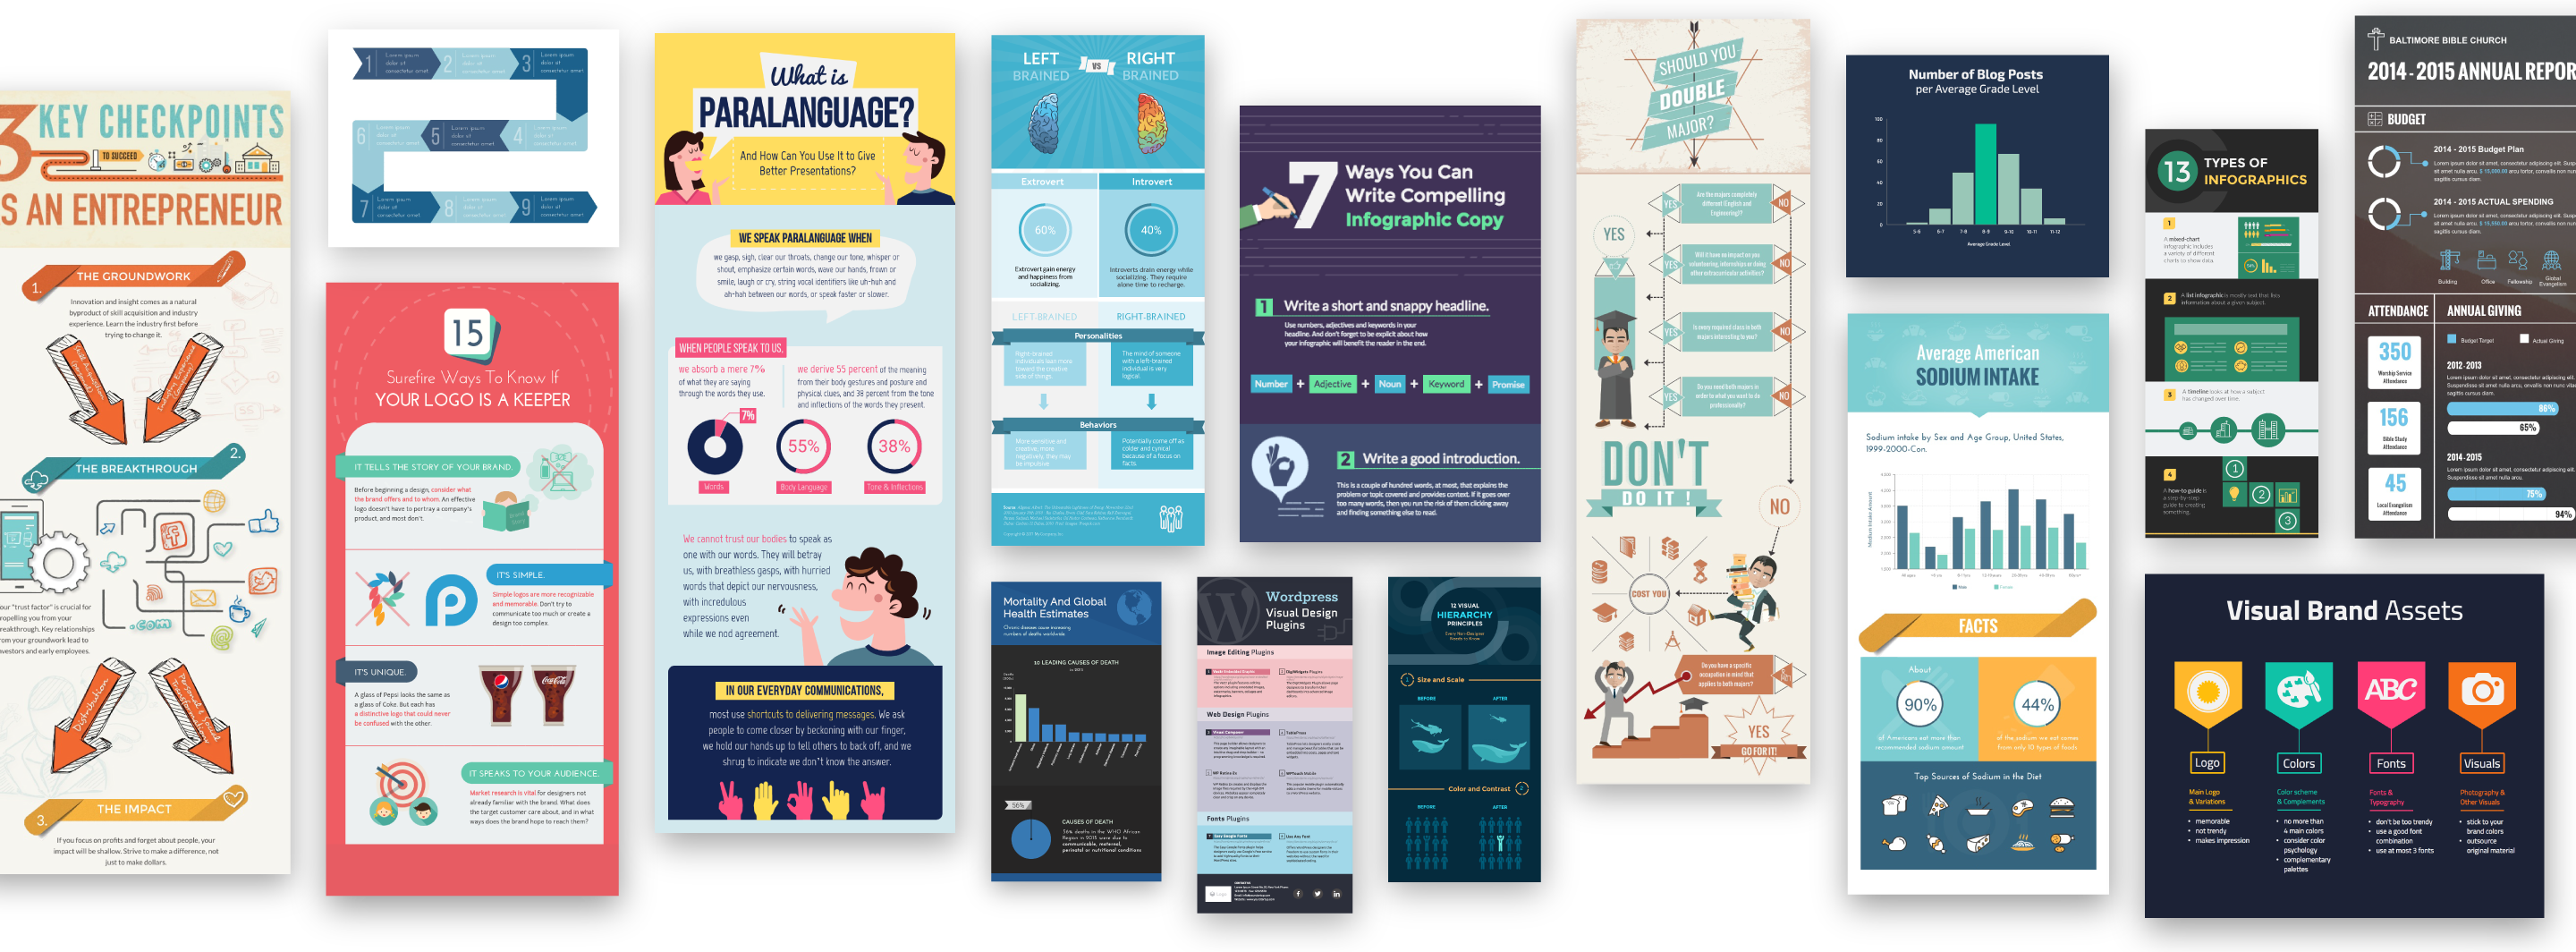 Make Free Infographics, Reports & Charts Online | Visme